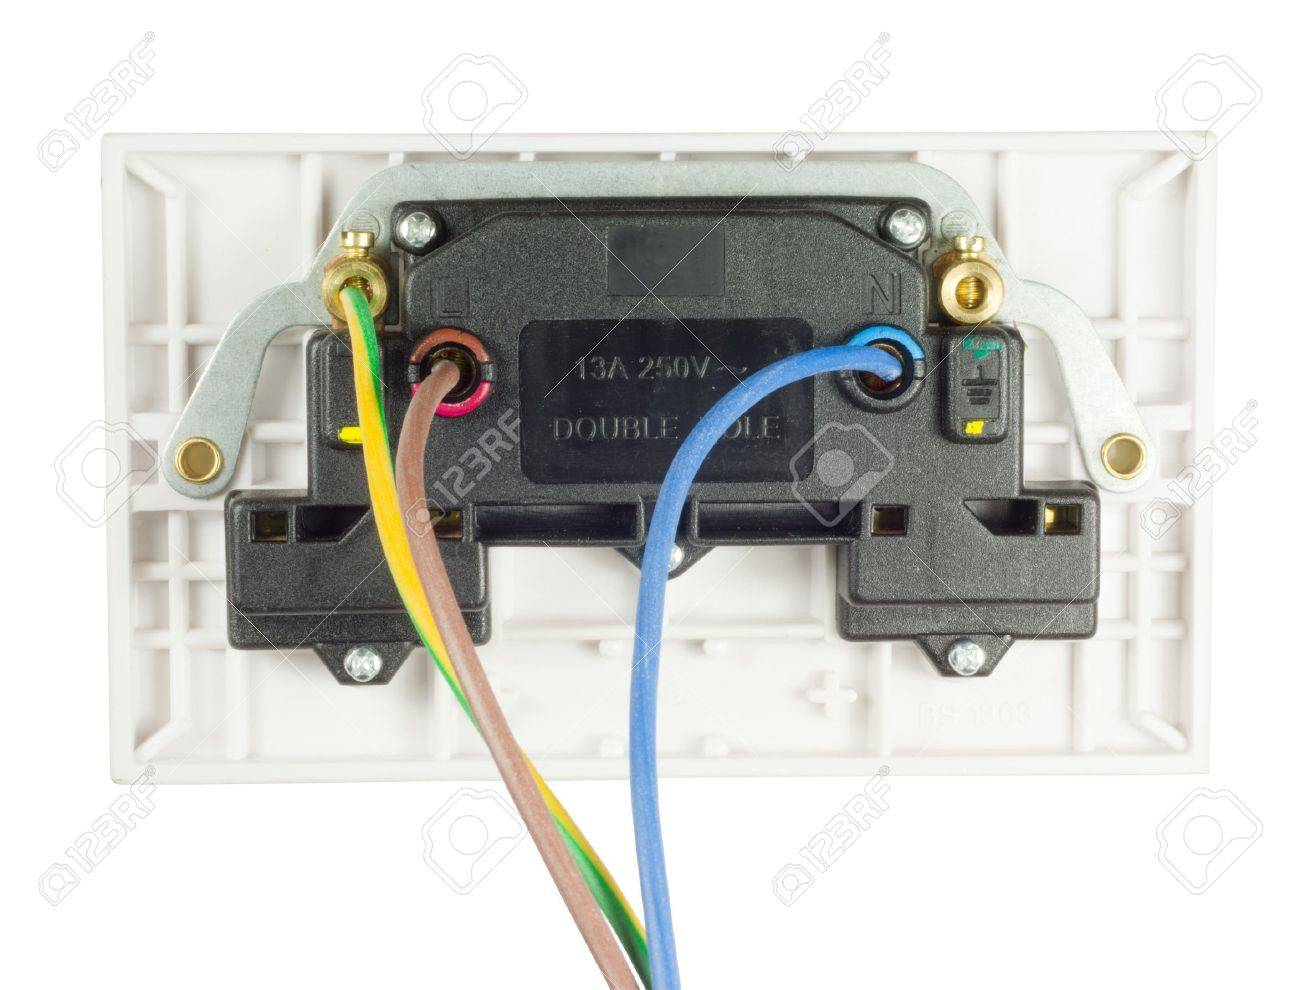 hight resolution of back view of a uk double socket outlet stock photo 16245674